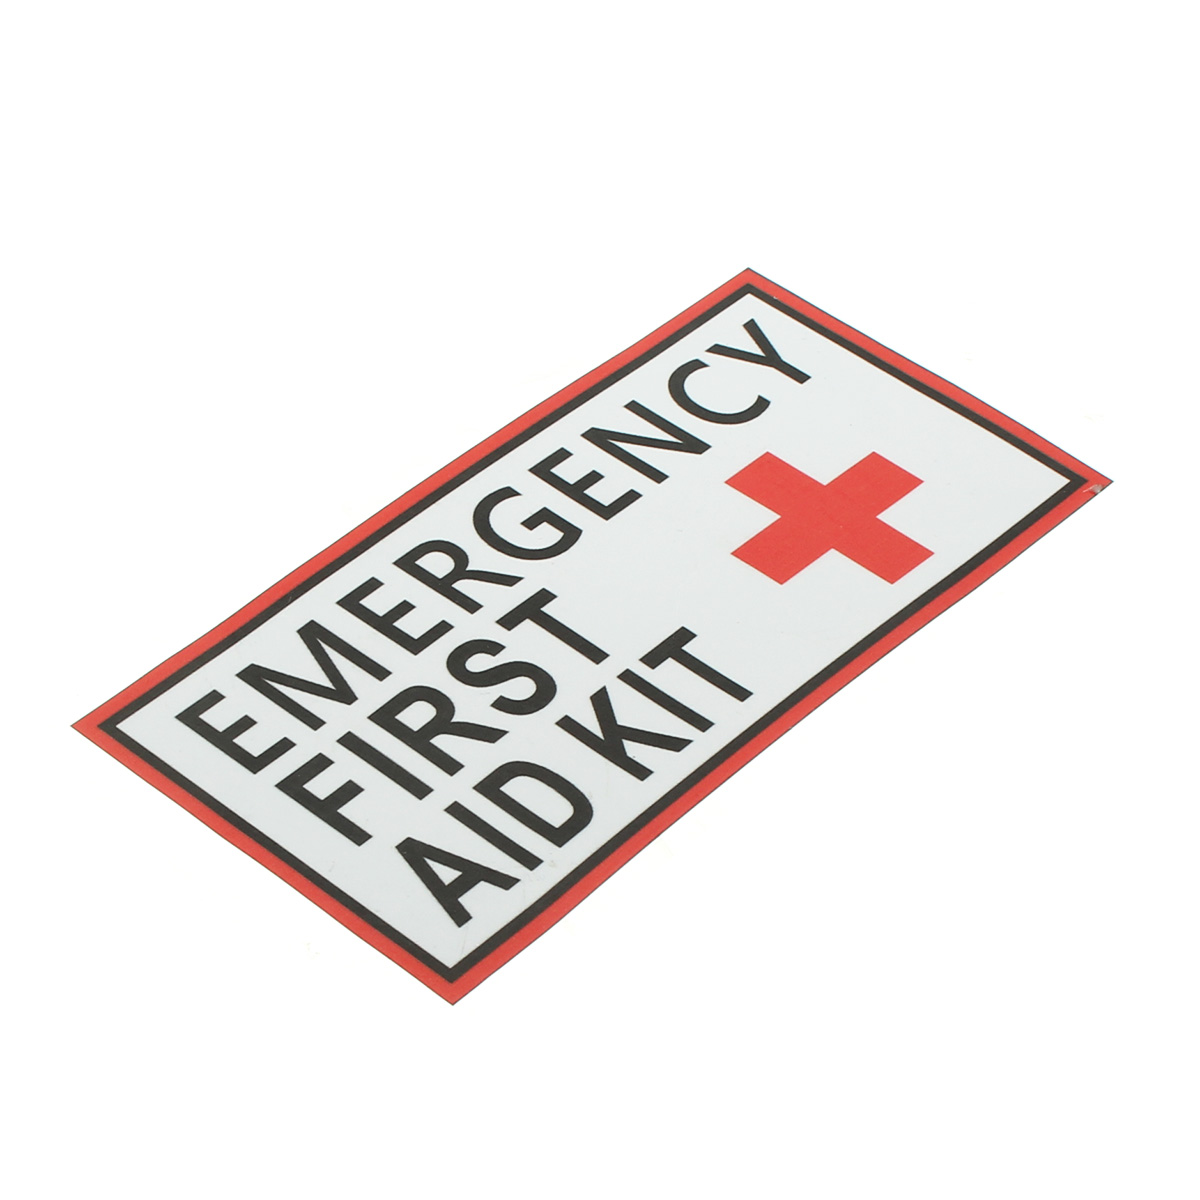 NEW Outdoor 4 Size First Aid Emergency Vinyl Sticker Waterproof Label Signs Red Cross Health Sticker